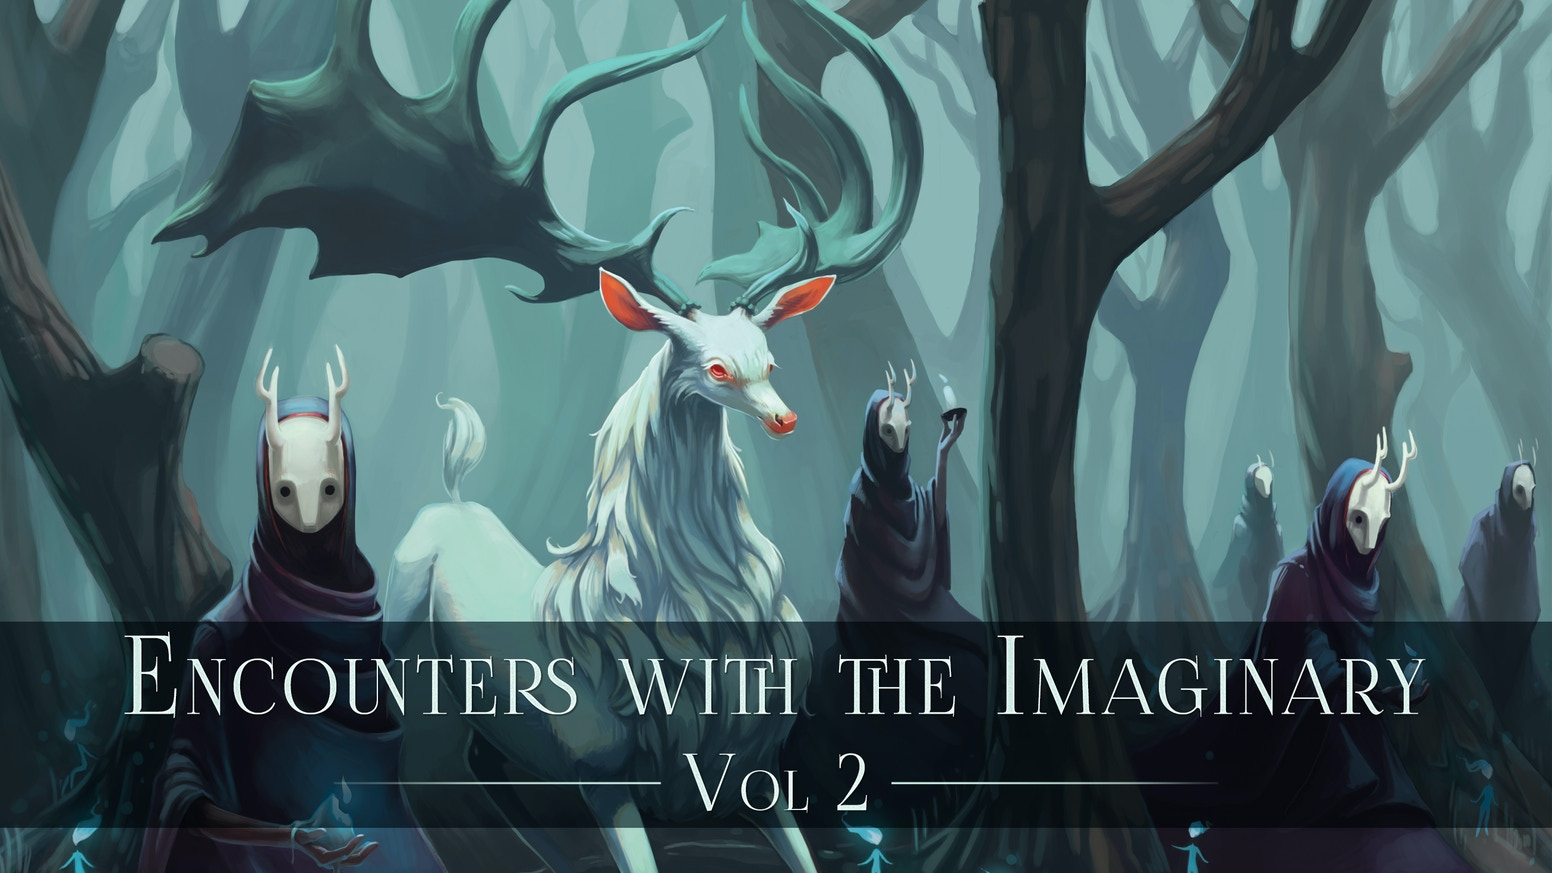 Encounters with the Imaginary is a collaborative art book featuring fantastical illustrations and wondrous narratives. Vol. 2 is now sold out, but Volume 3 is live on Kickstarter now!